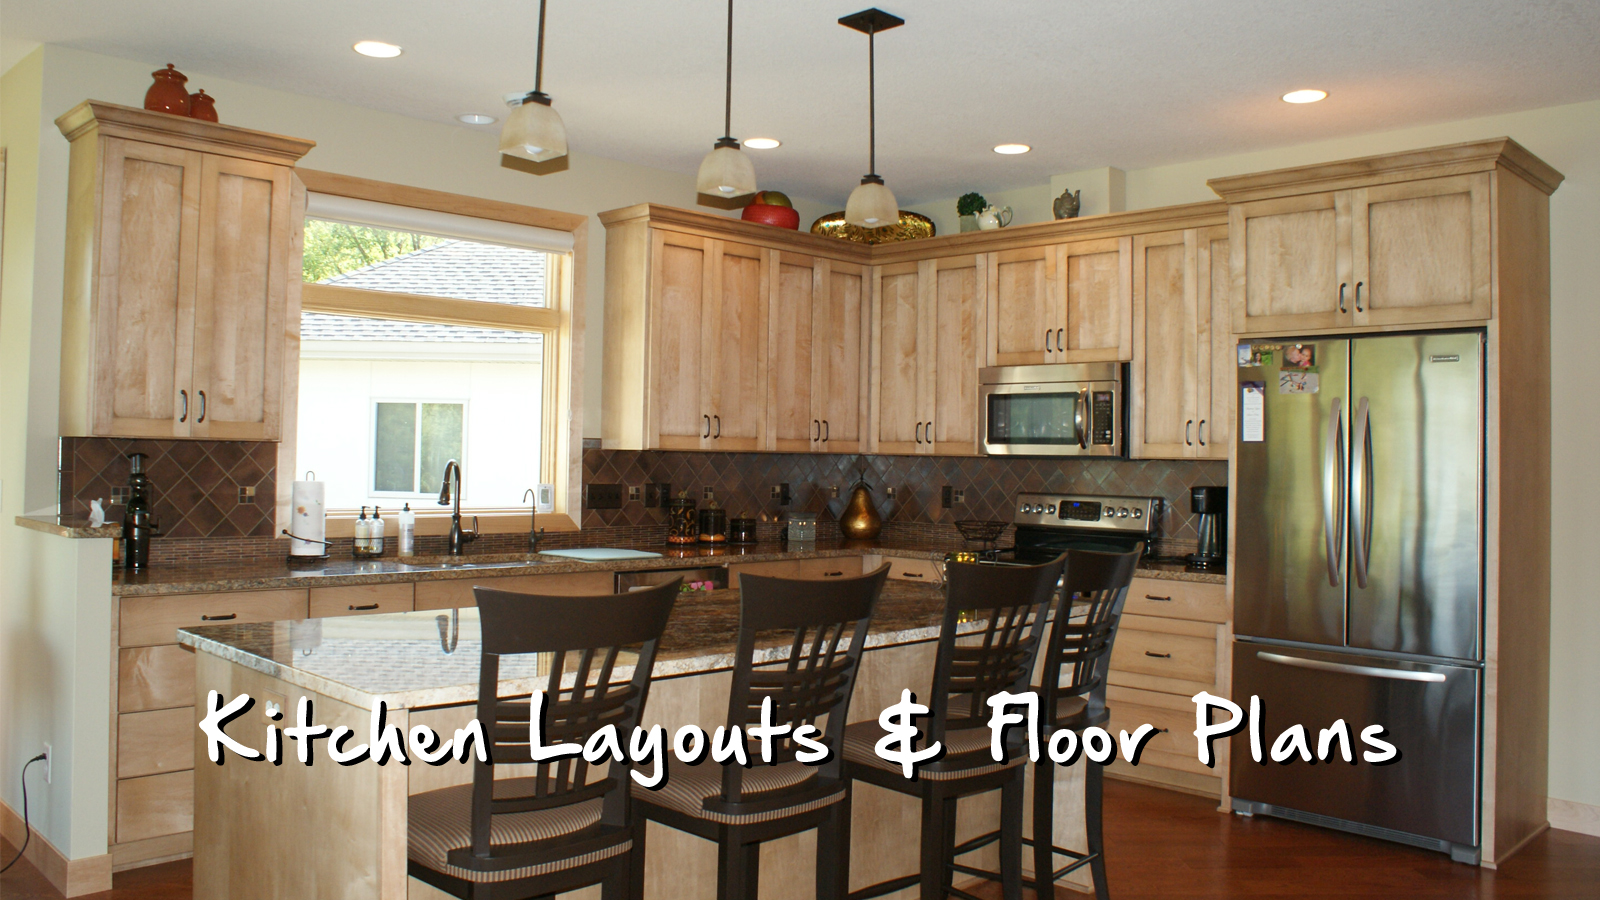 Kitchen Layouts & Floor Plans